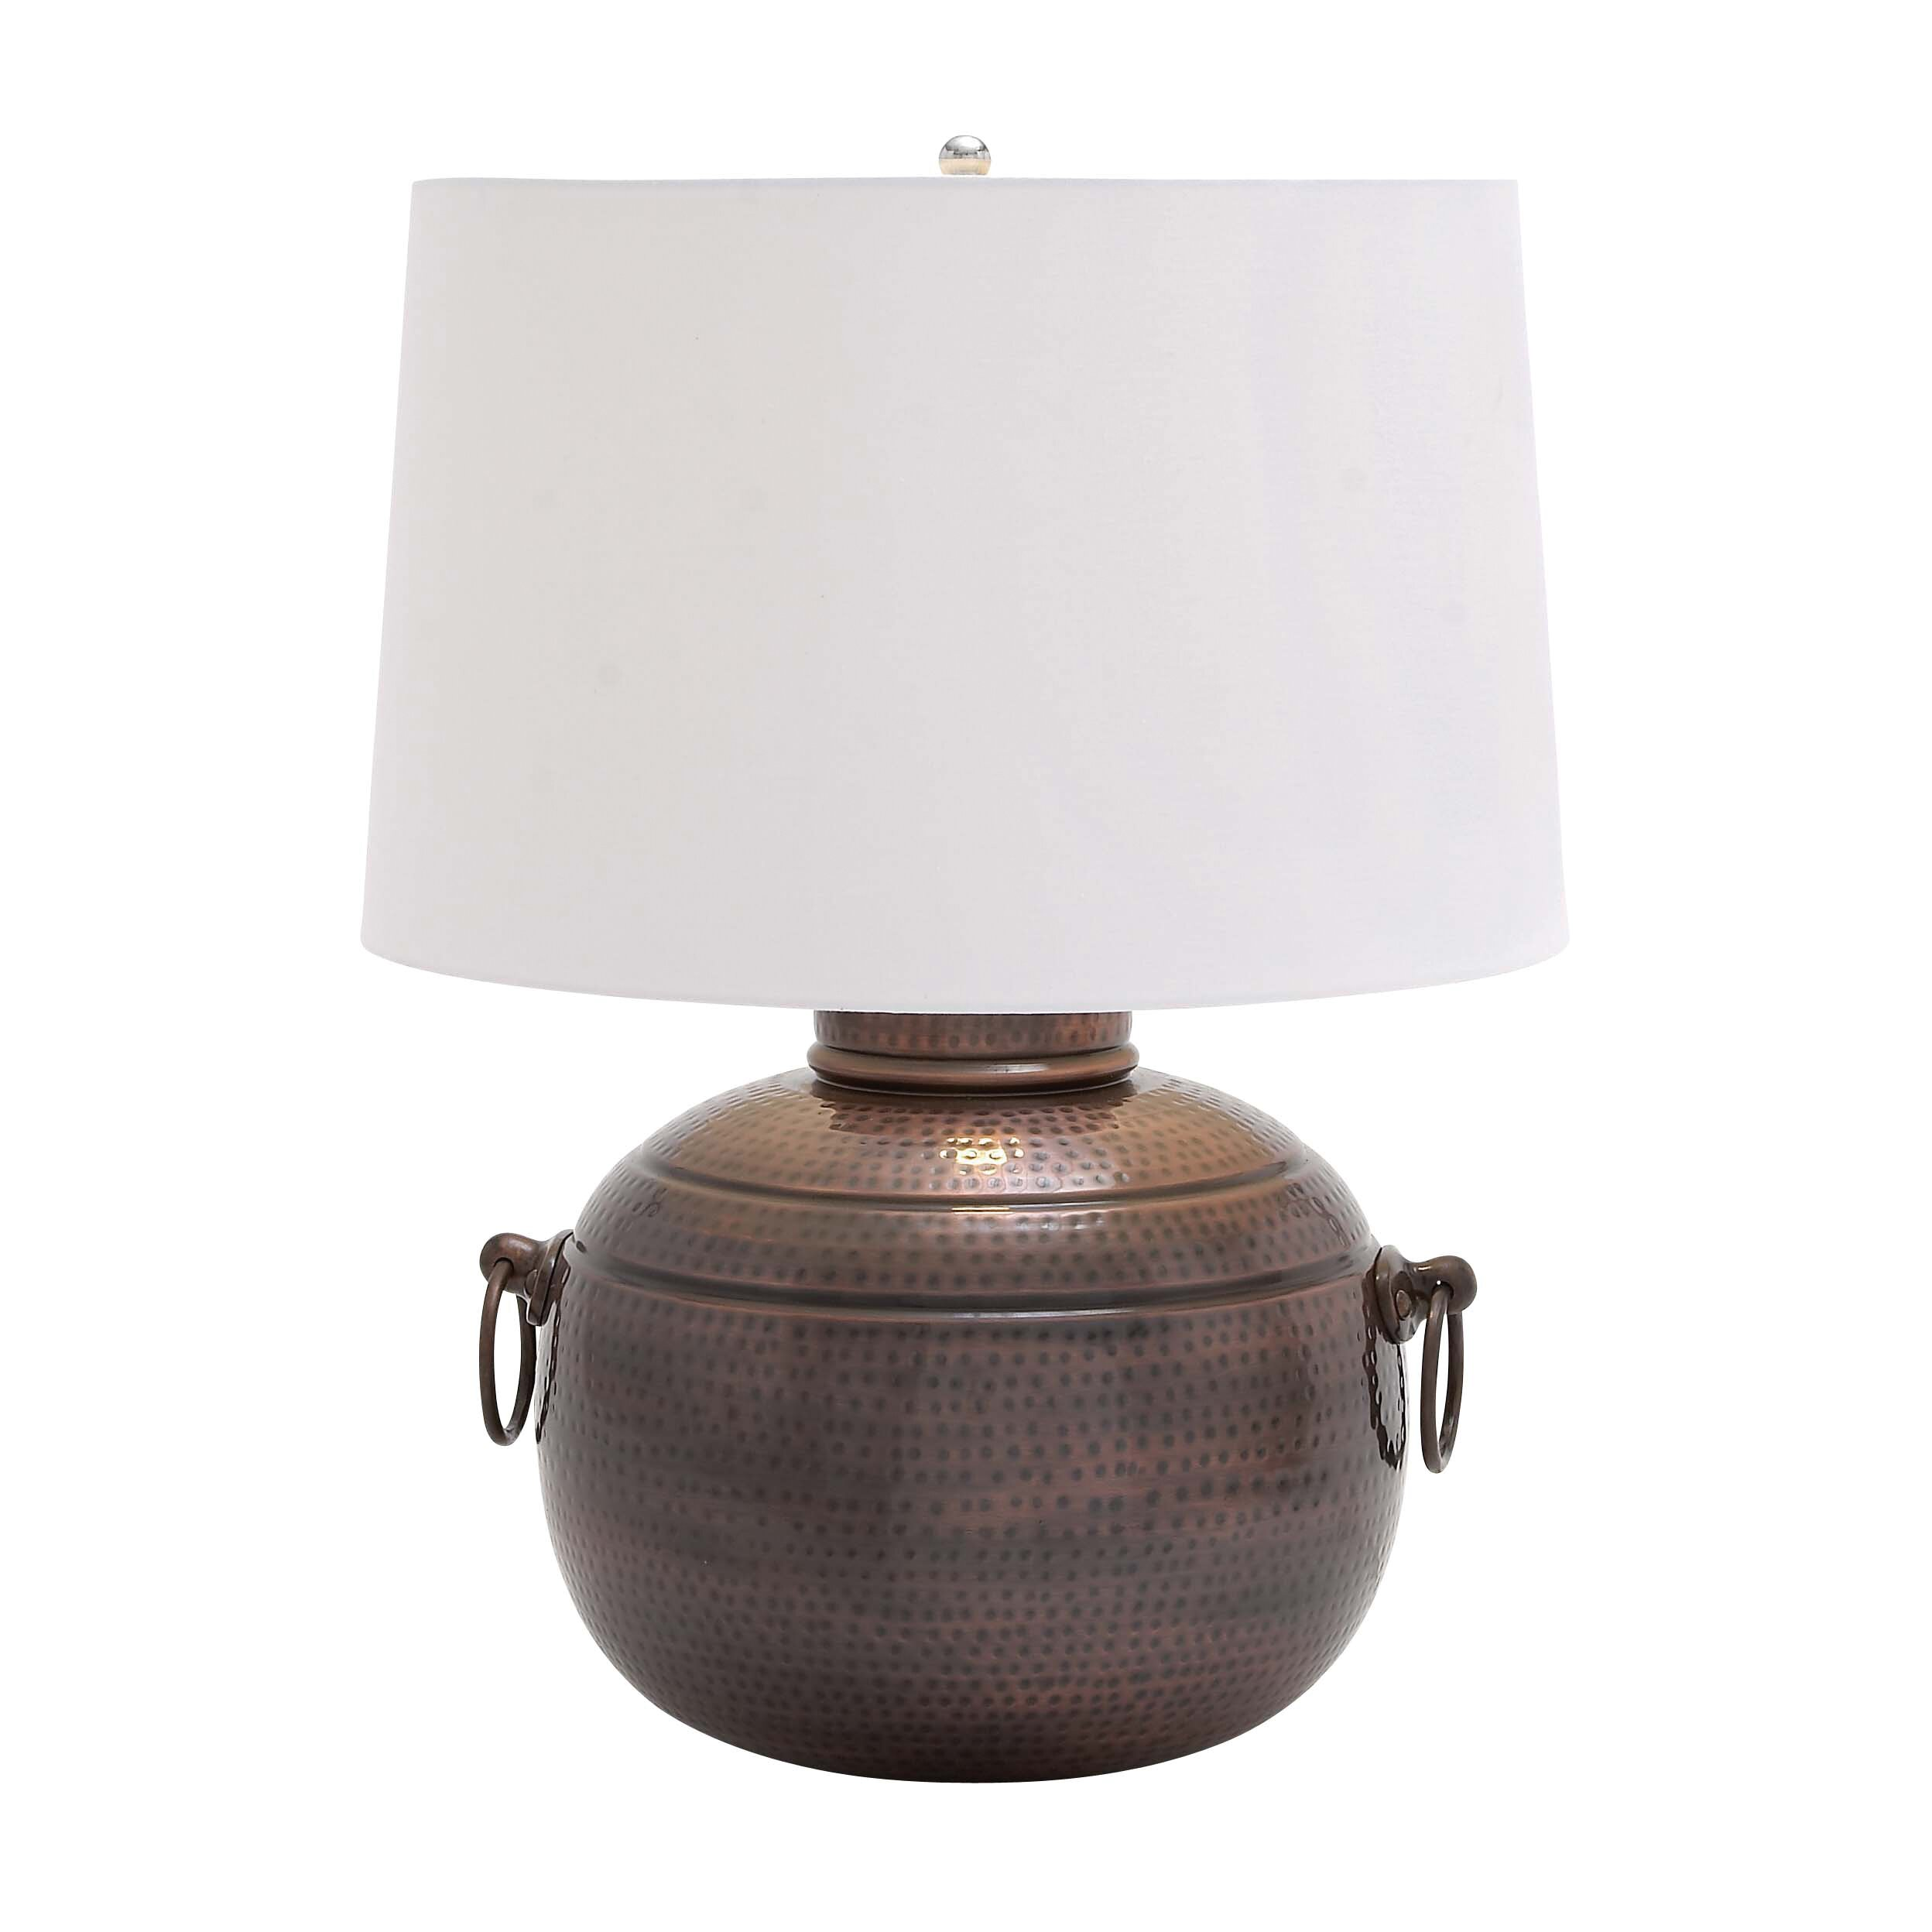 hammered design metal 26 h table lamp with empire shade by woodland. Black Bedroom Furniture Sets. Home Design Ideas